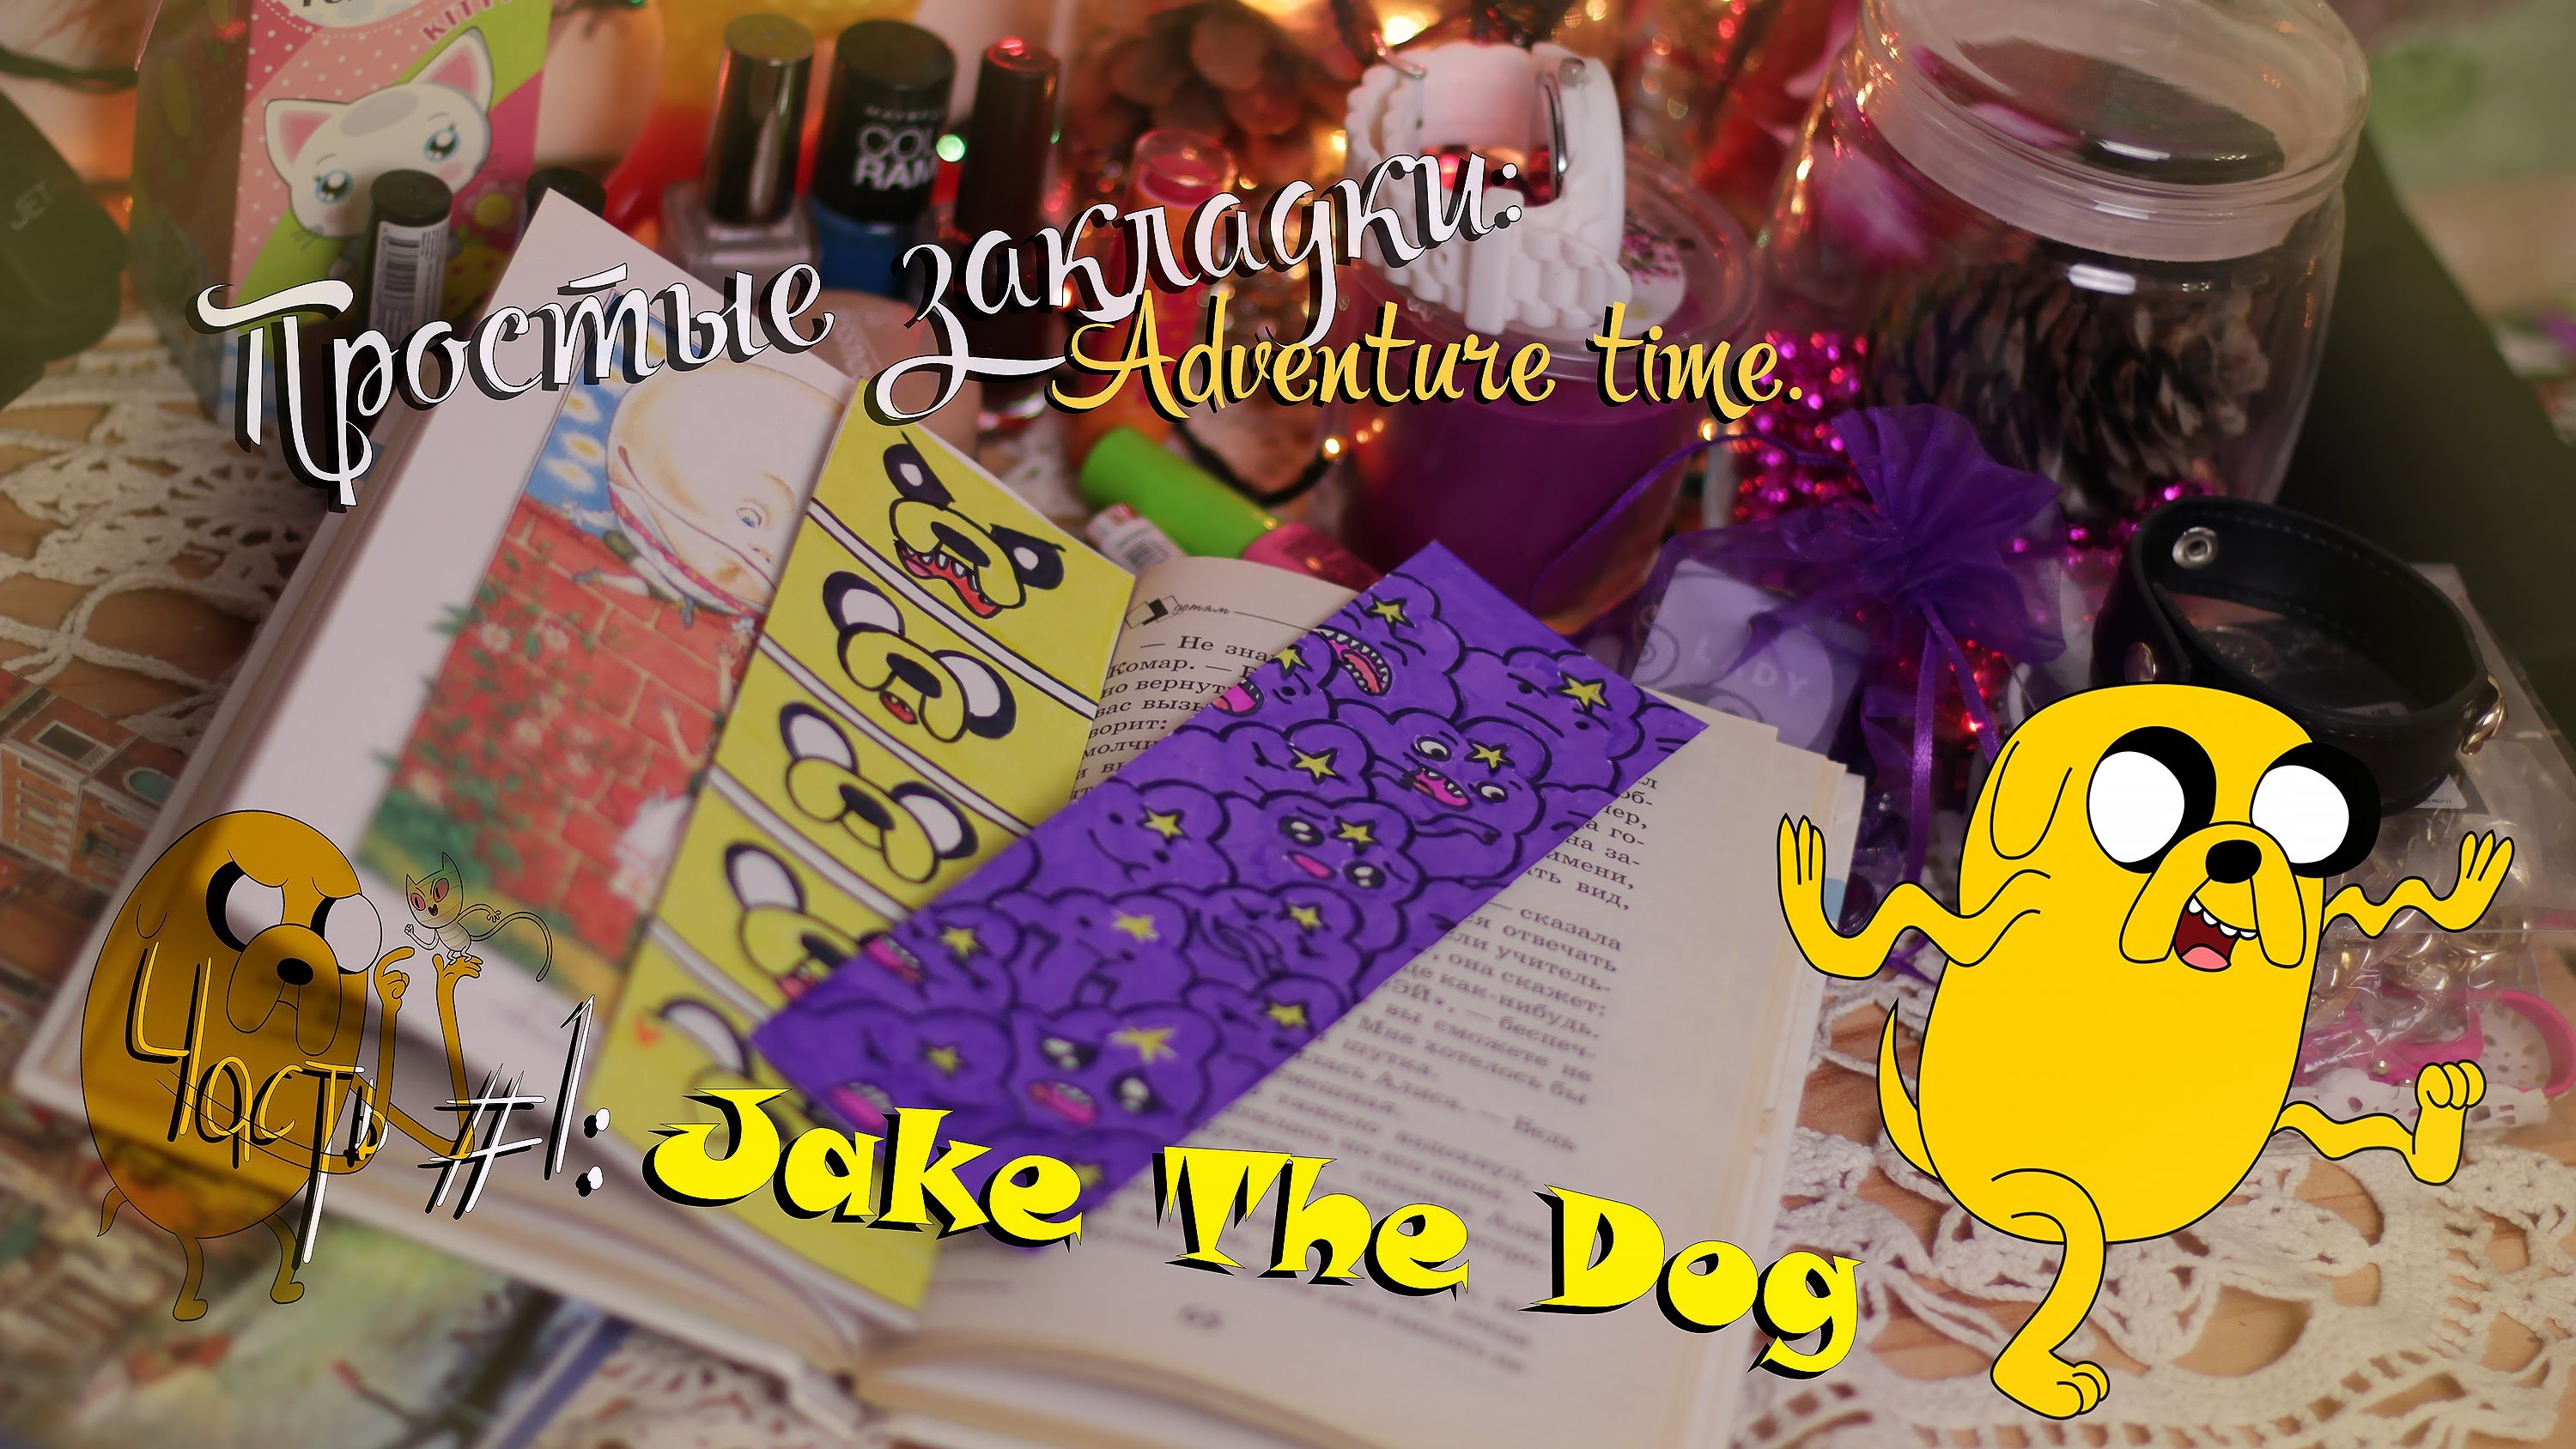 Простые закладки: Adventure time. Часть 1: Jake The Dog|Fosssaaa